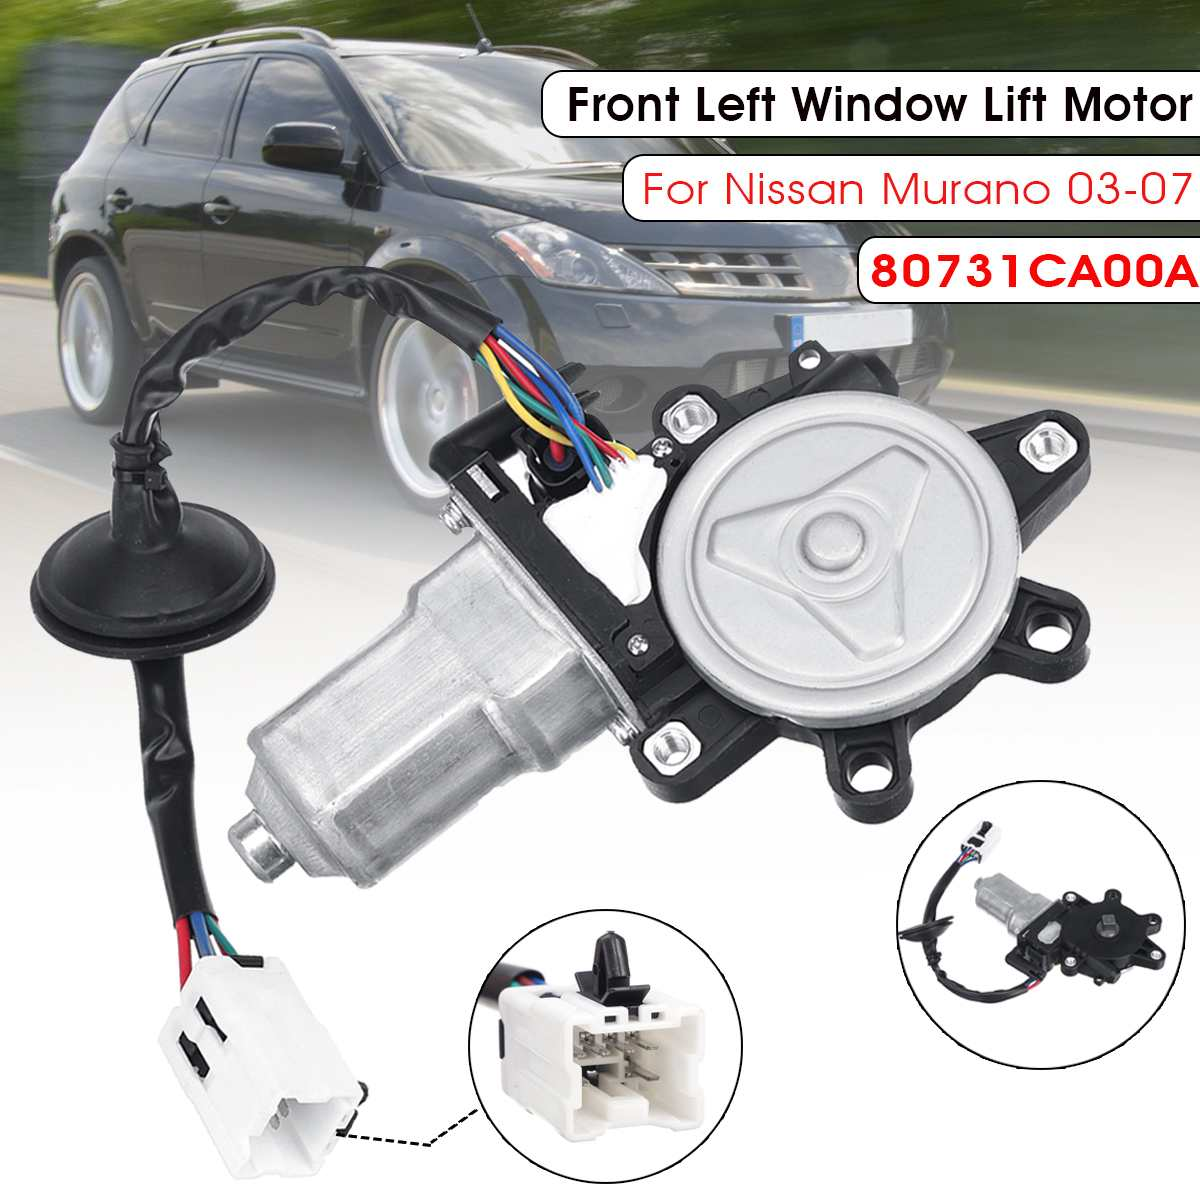 Power Front Left Driver Side LH Window Motor for Nissan Murano 2003 2004 2005 2006 2007 80731CA00A|Window Motors & Parts| |  - title=